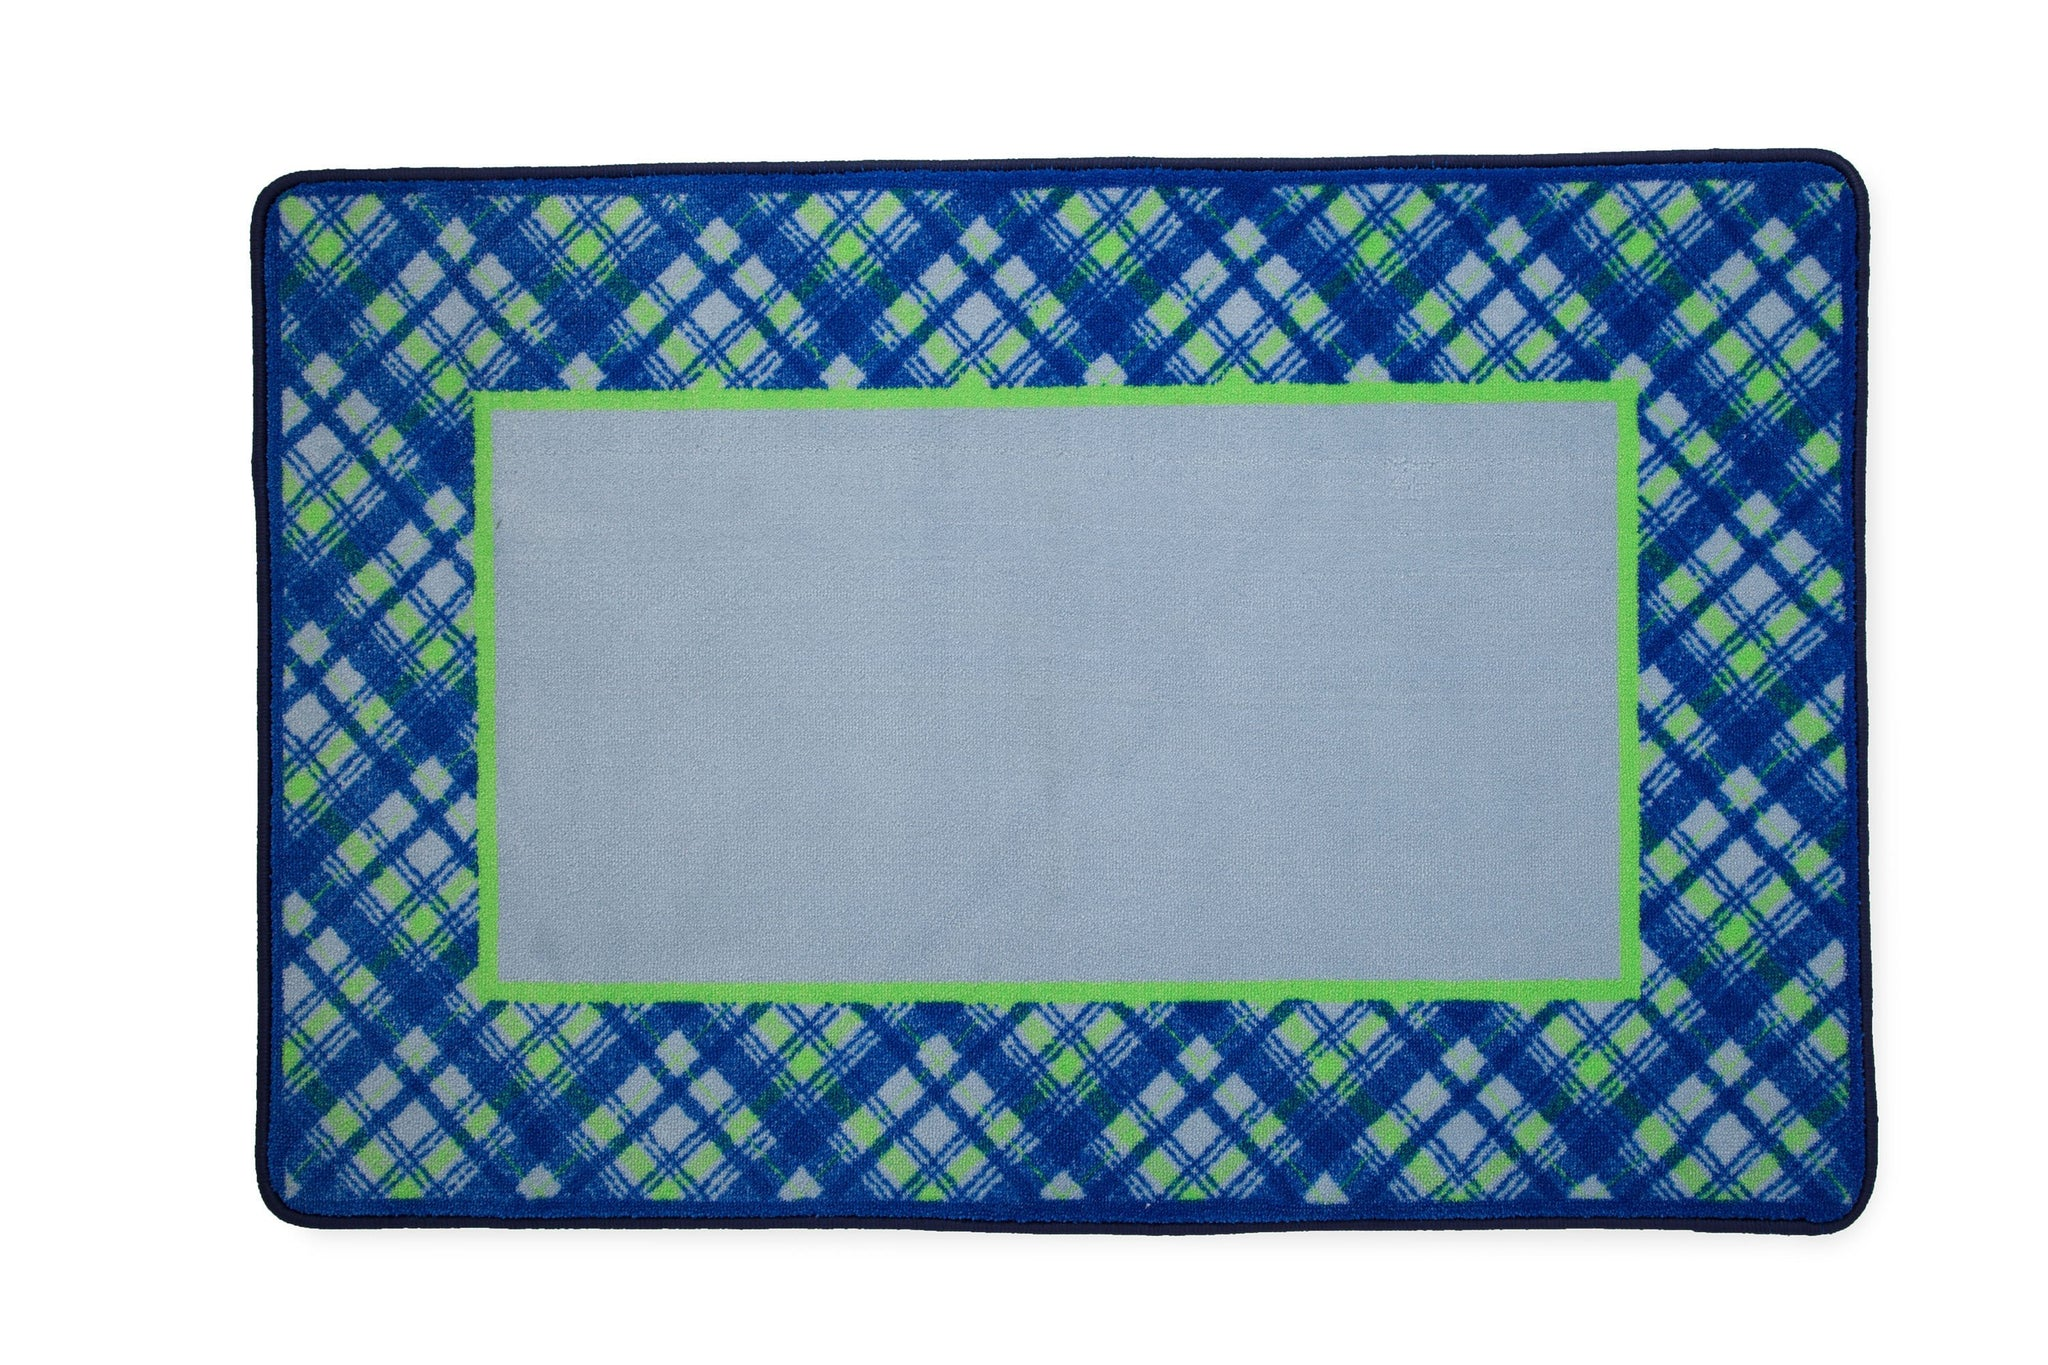 Boys Soft Kids Area Rug, Blue Green Plaid (2204) e2e